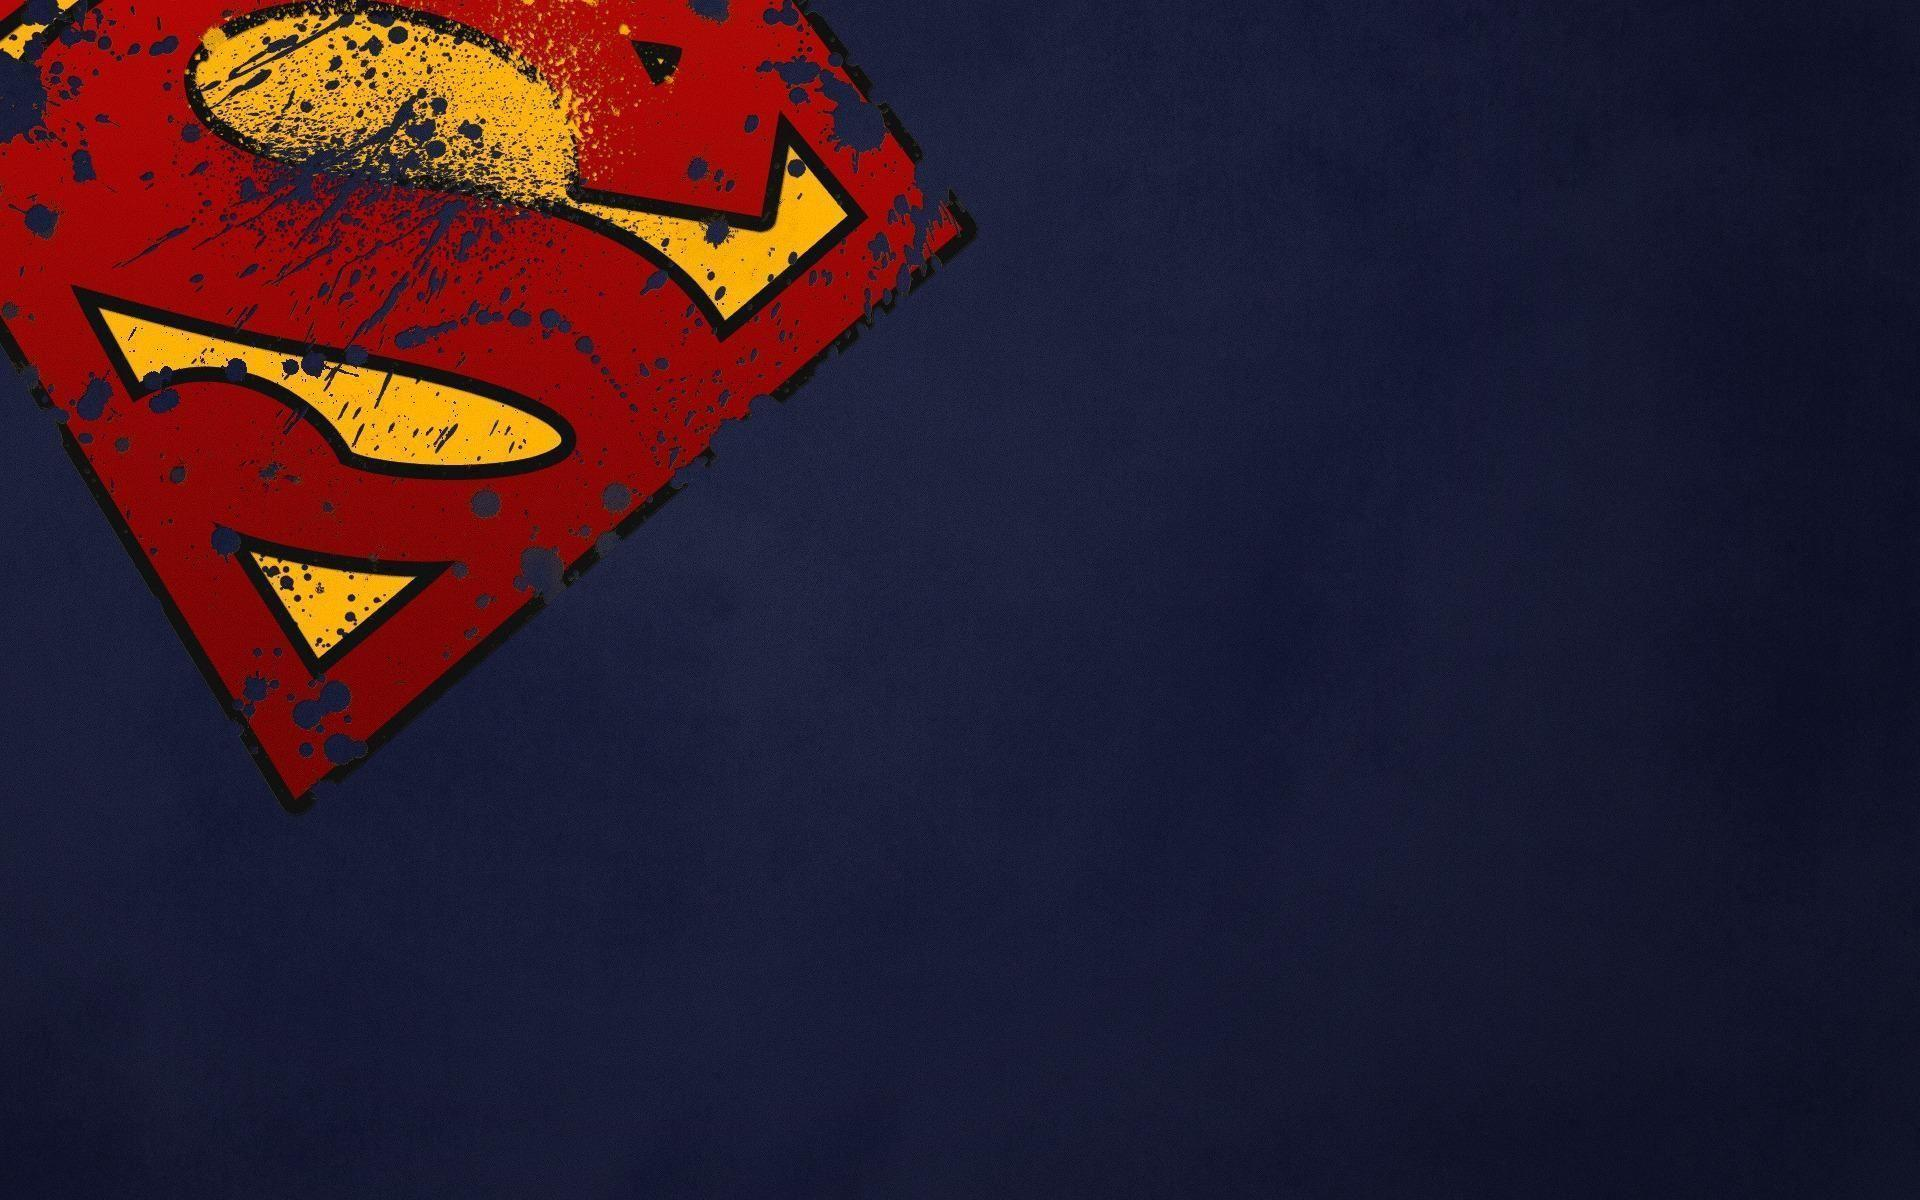 Superman Logo Wallpapers Full Hd Wallpaper Search | HD Wallpapers ...